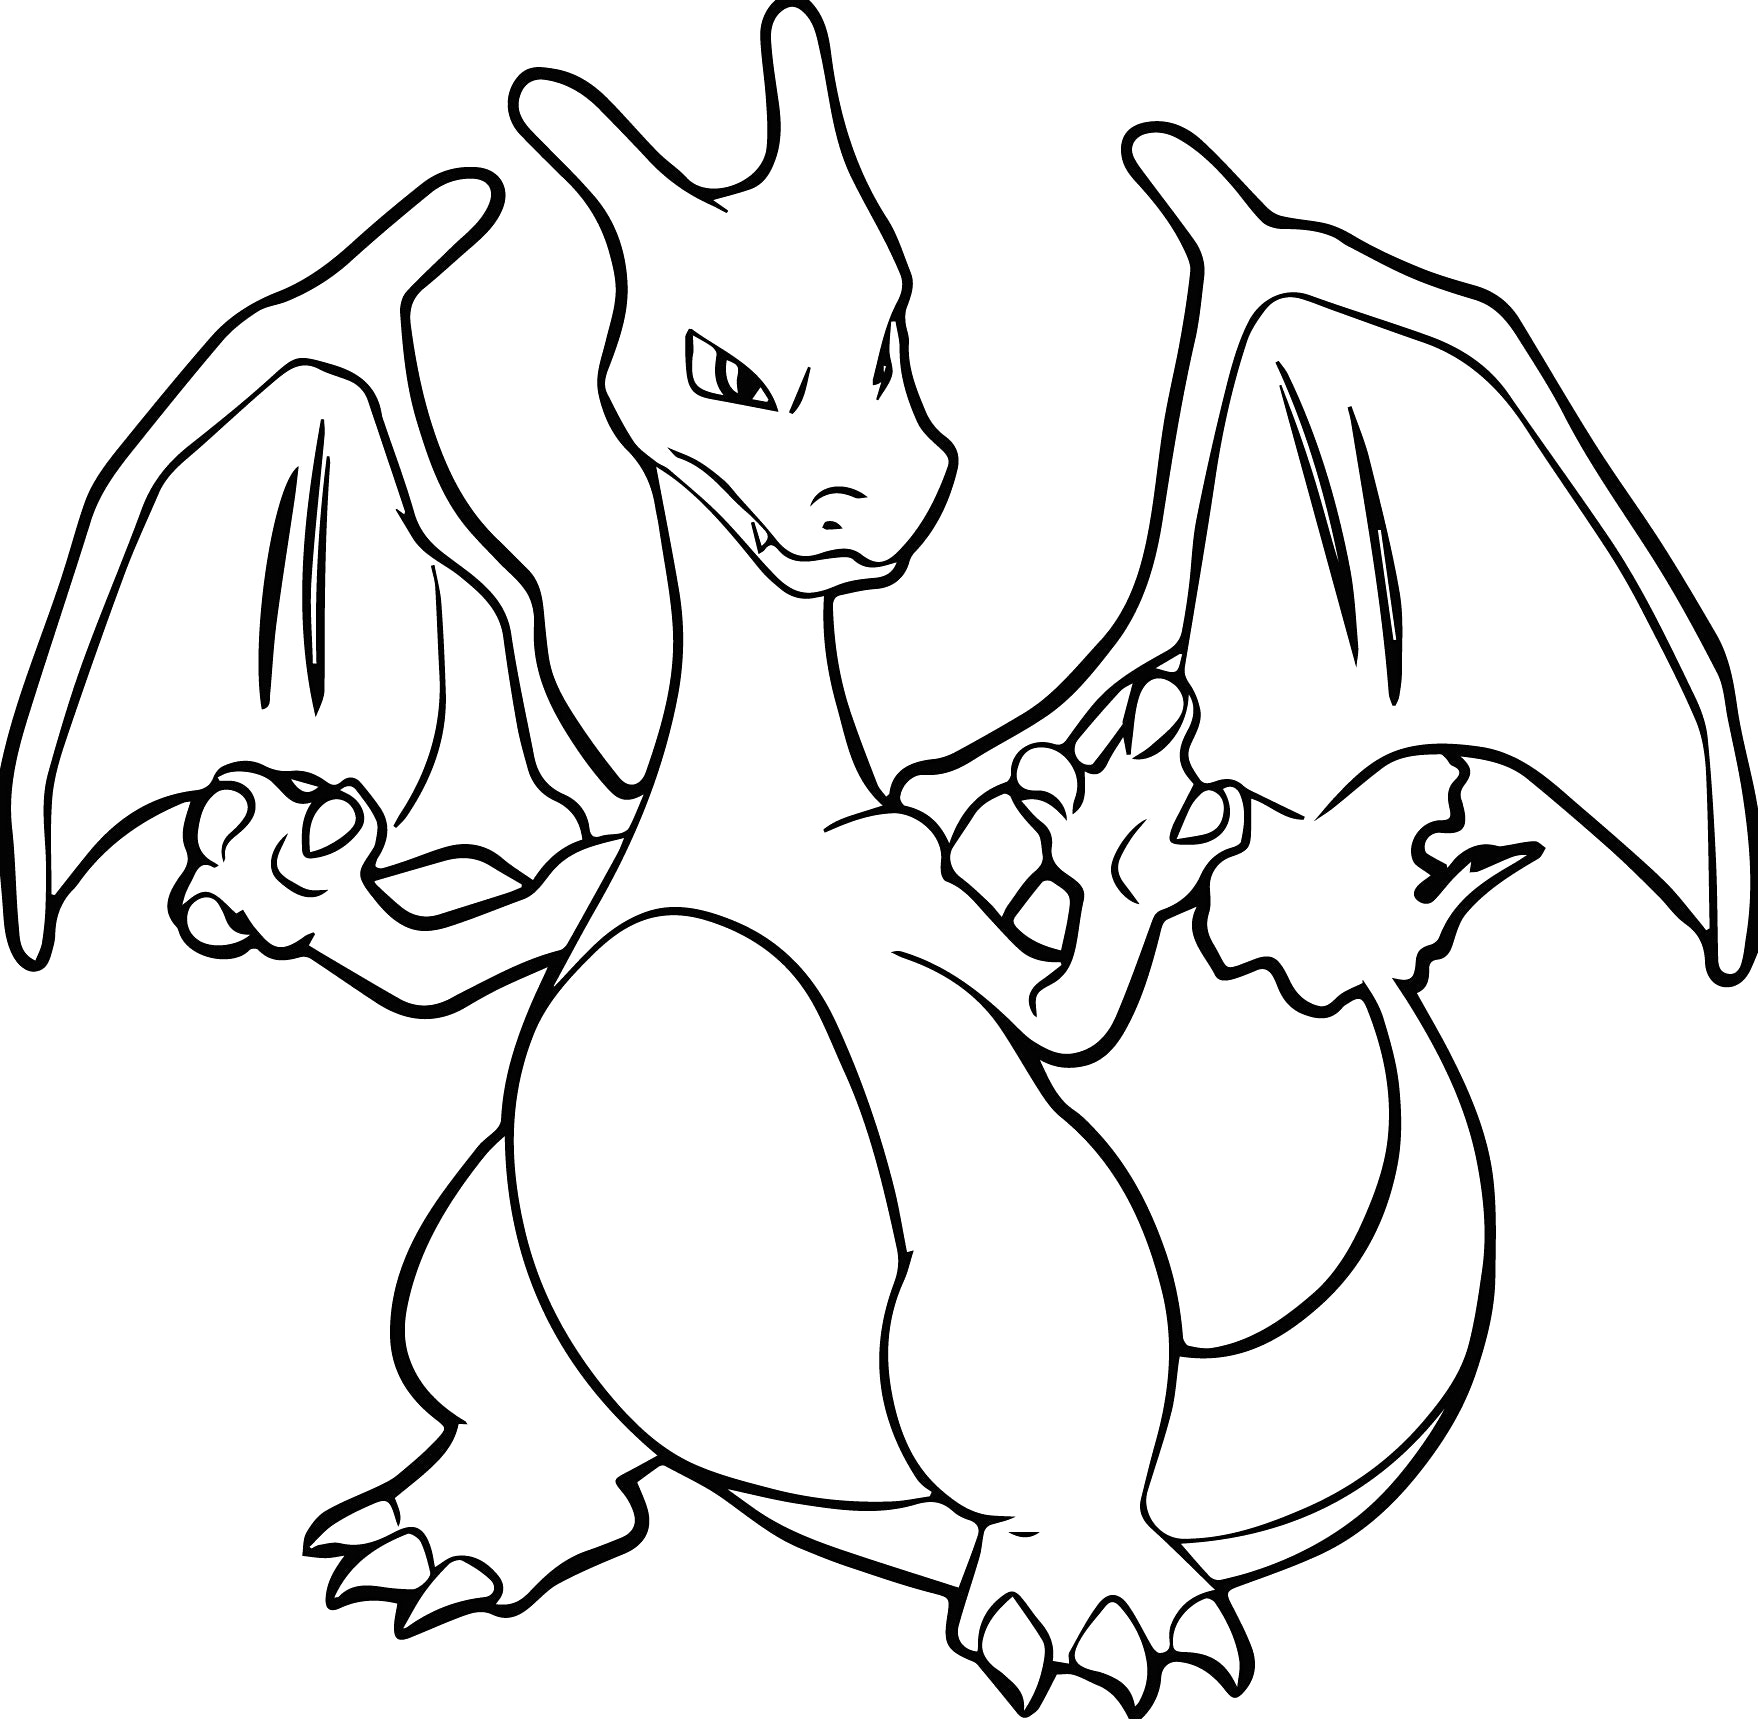 1758x1719 New Pokemon Charizard Coloring Pages Collection Printable